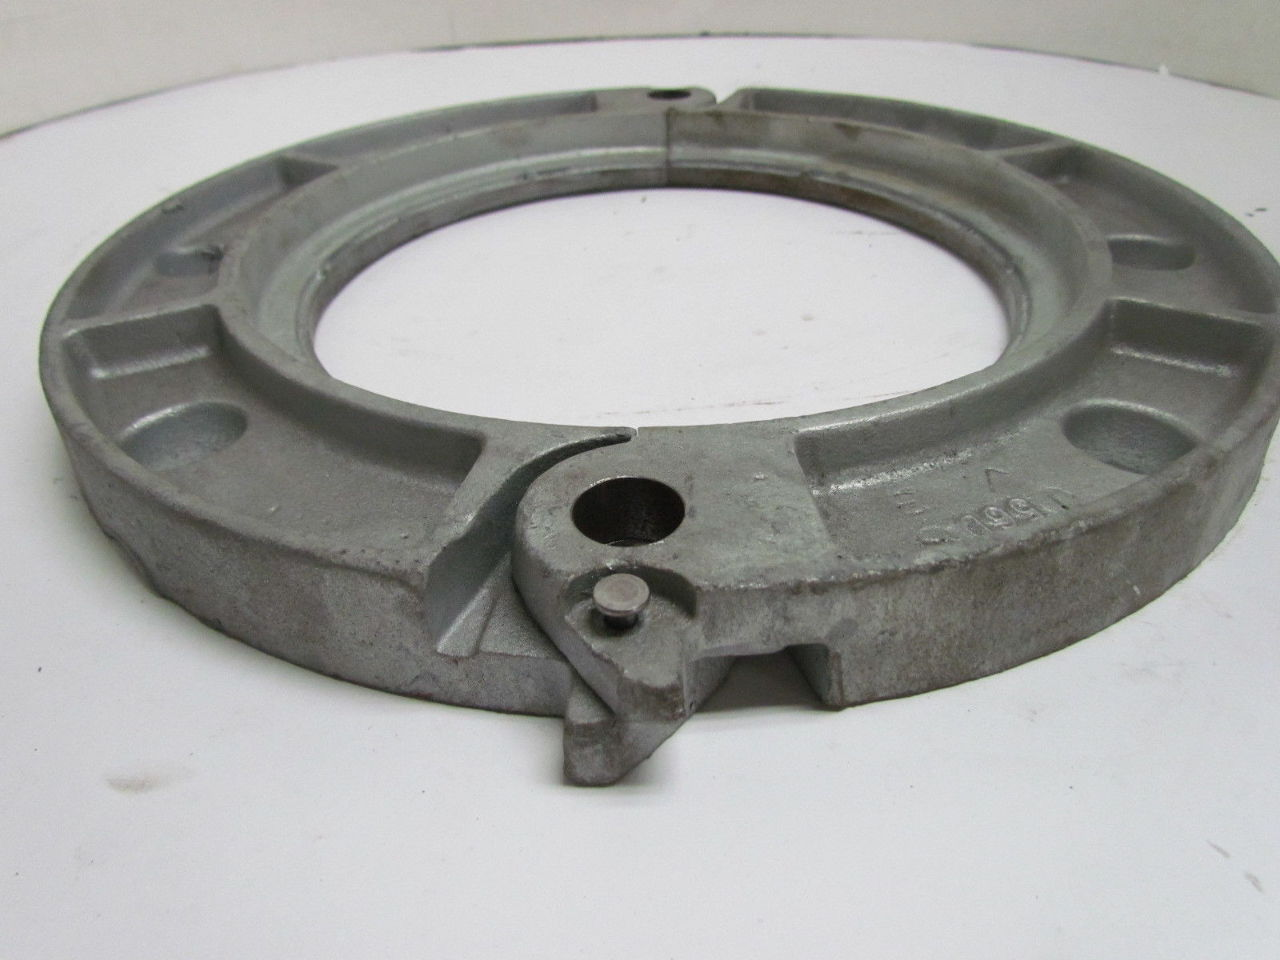 Victaulic Flange Gaskets Pictures to Pin on Pinterest